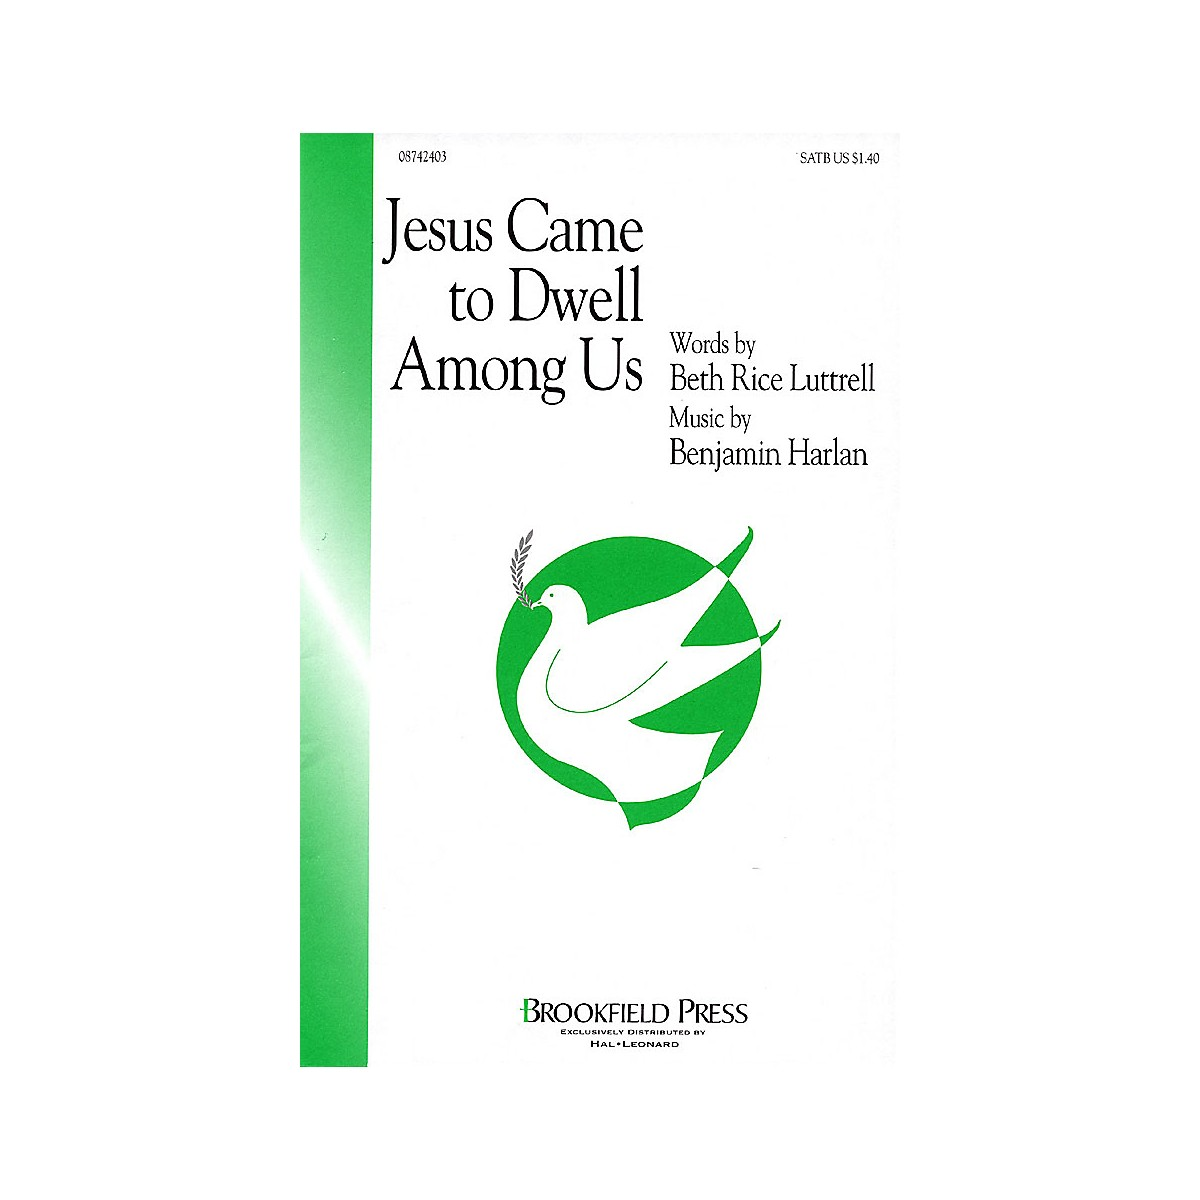 Brookfield Jesus Came to Dwell Among Us SATB composed by Beth Rice Luttrell